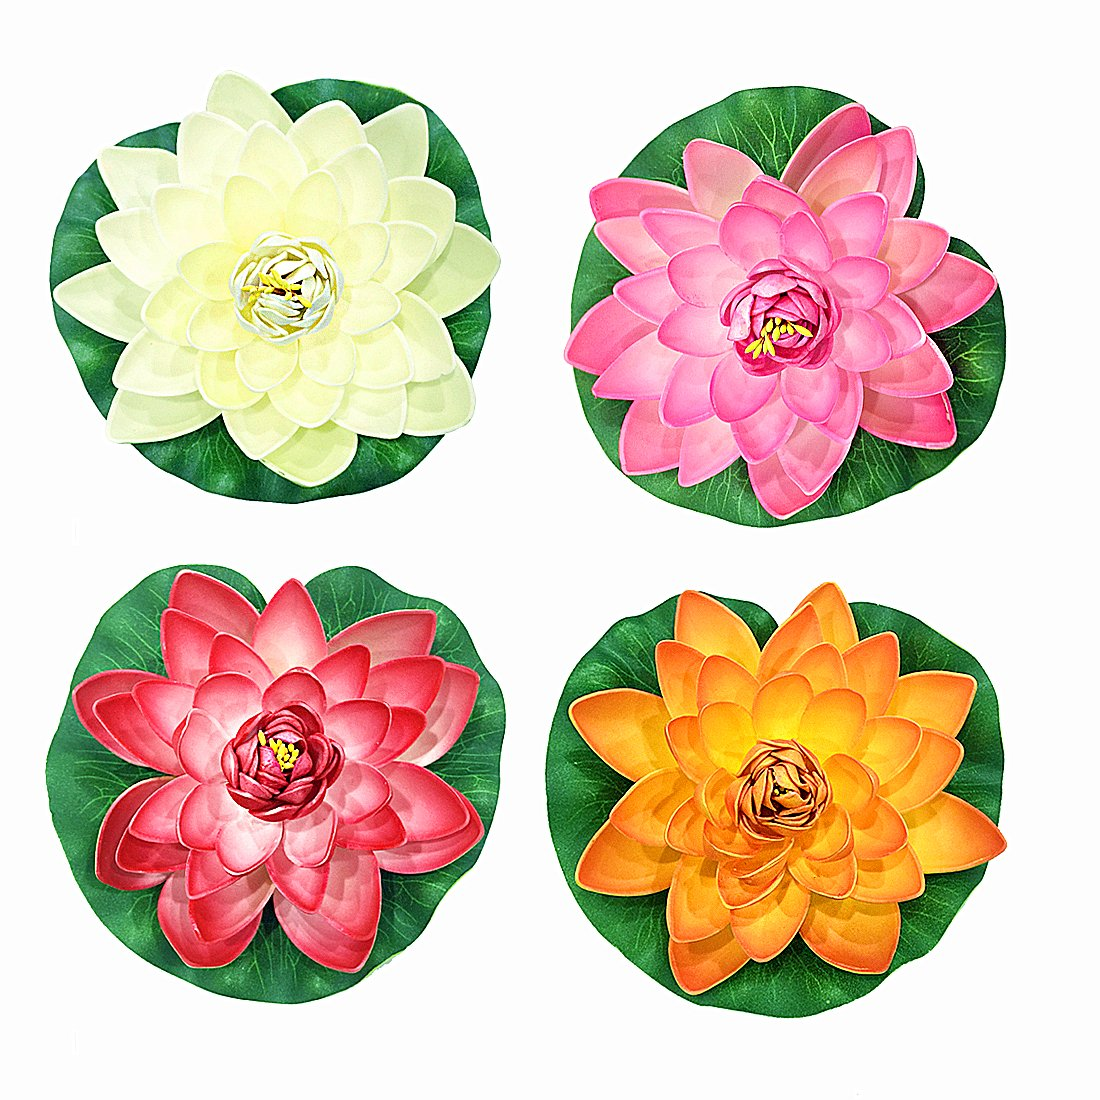 Best water lillies for ponds amazon navadeal 4pcs artificial floating foam lotus flowers realistic water lily pads vibrant color pink ivory orange crimson perfect for home garden patio pond izmirmasajfo